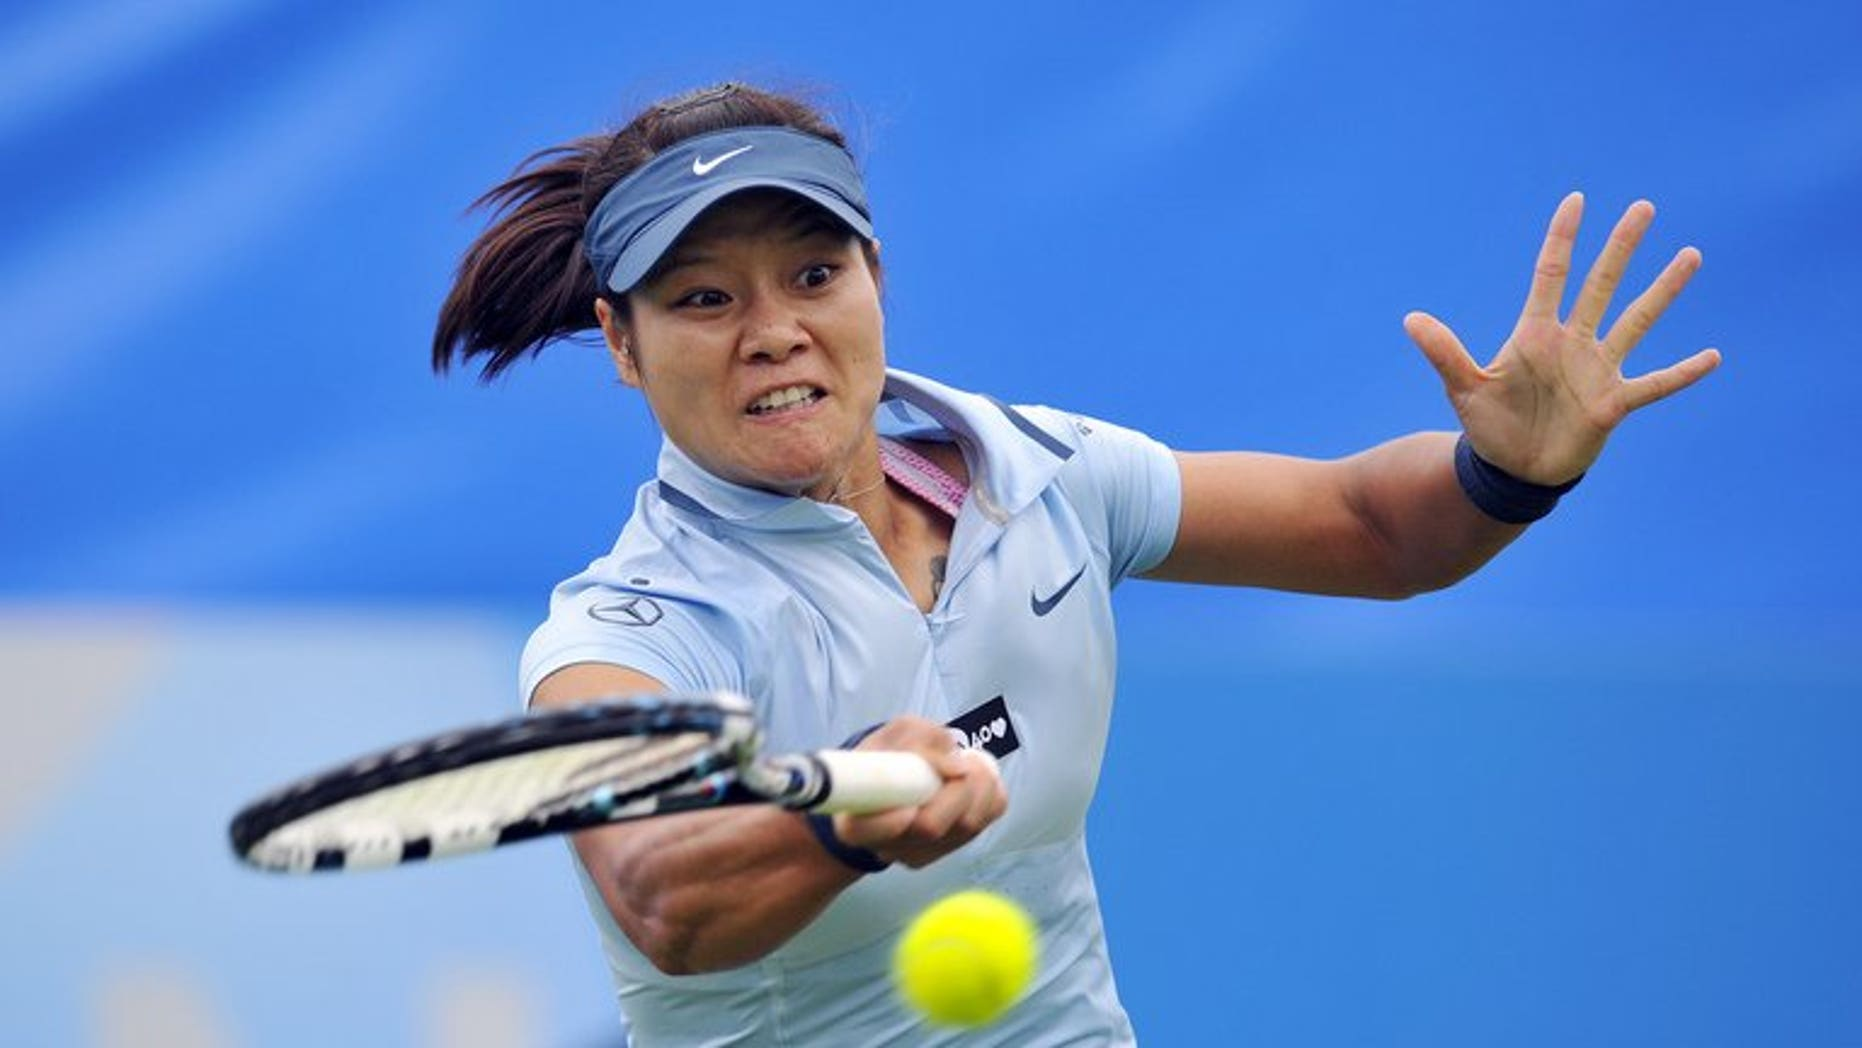 Li Na hits a return against Alize Cornet in Eastbourne, southern England on Tuesday. Li reached the quarter-finals on Wednesday without hitting a ball after scheduled opponent Mario Bartoli pulled out with a virus.